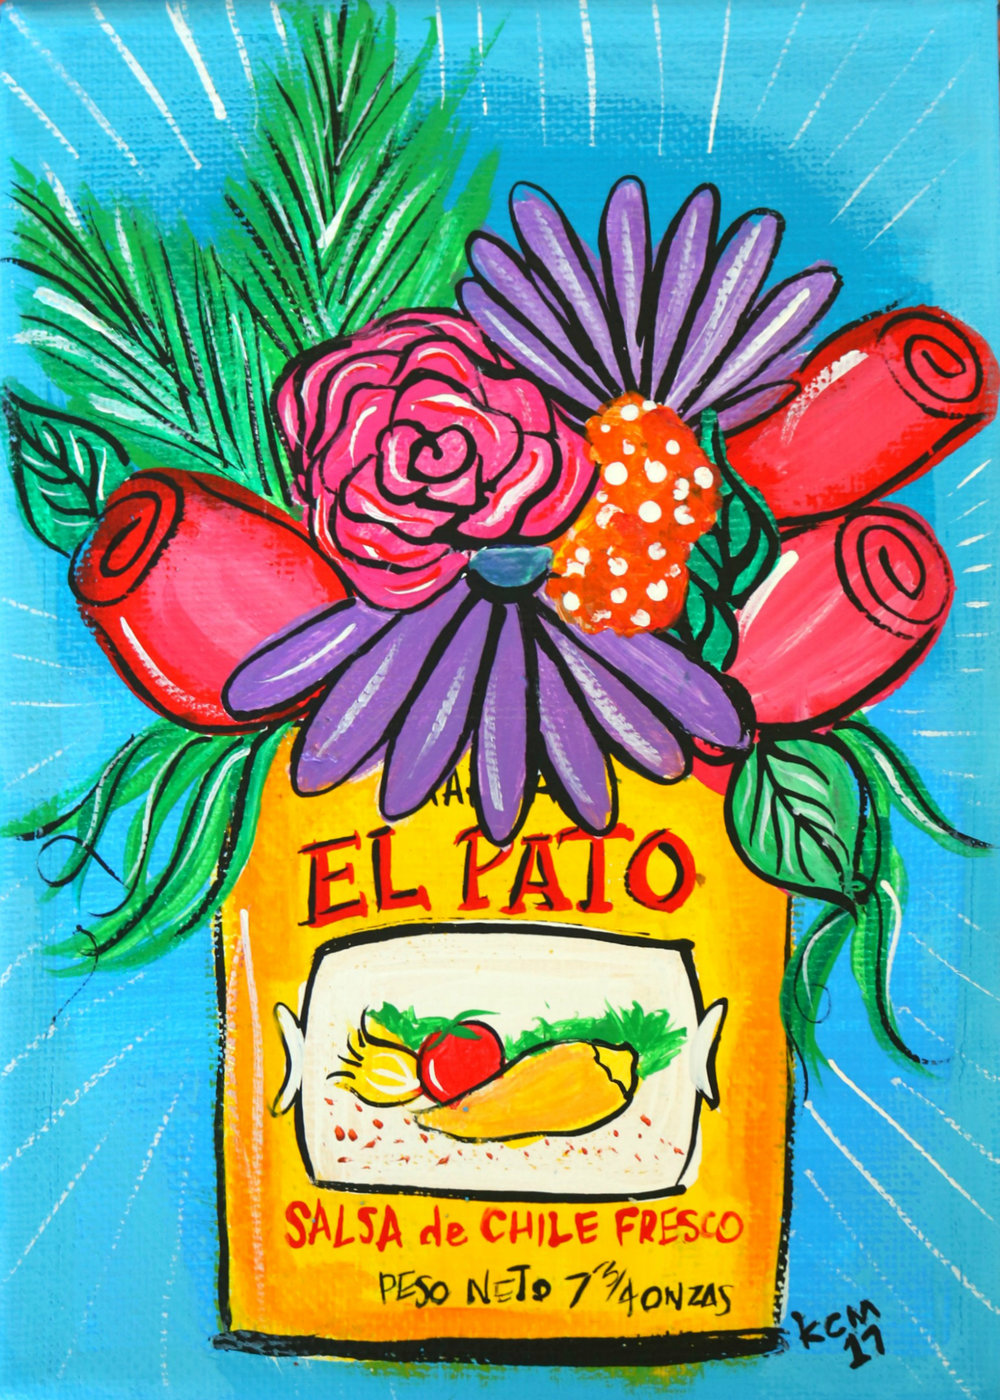 El pato by kathy cano-murillo, acrylic on canvas.